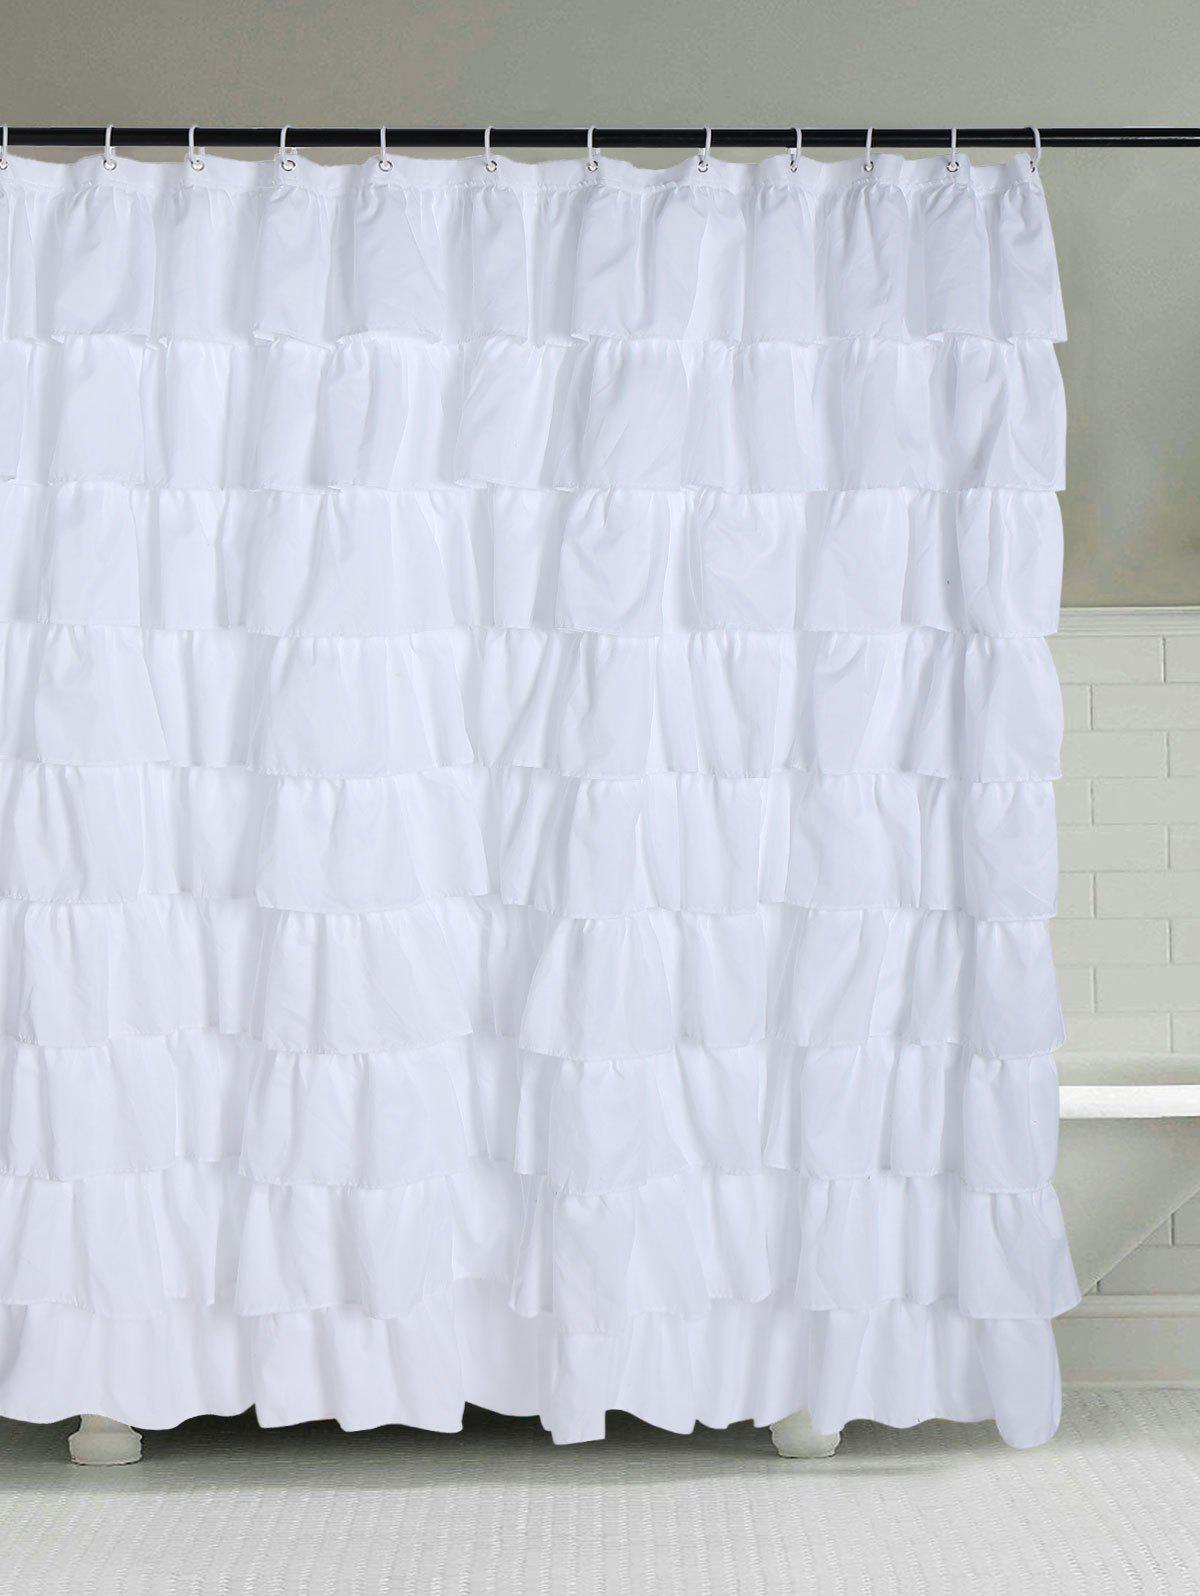 2018 Ruffle Layers Design Polyester Bath Shower Curtain WHITE W ...